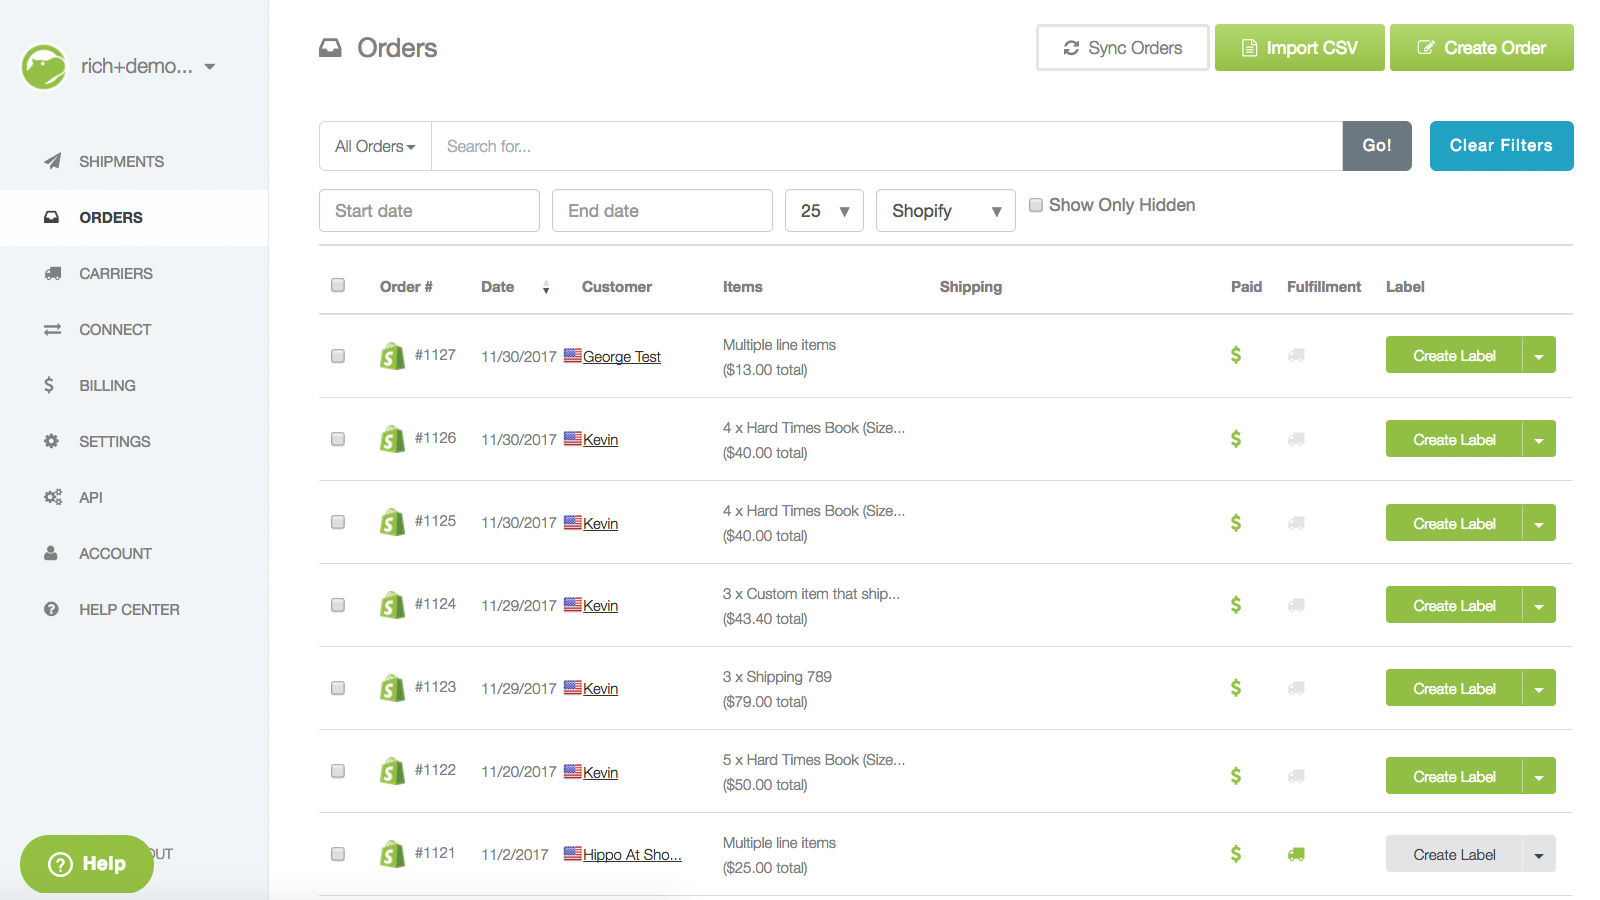 autoketing-15-Best-Free-Shopify-Apps-To-Skyroket-Sales-In-2019-6